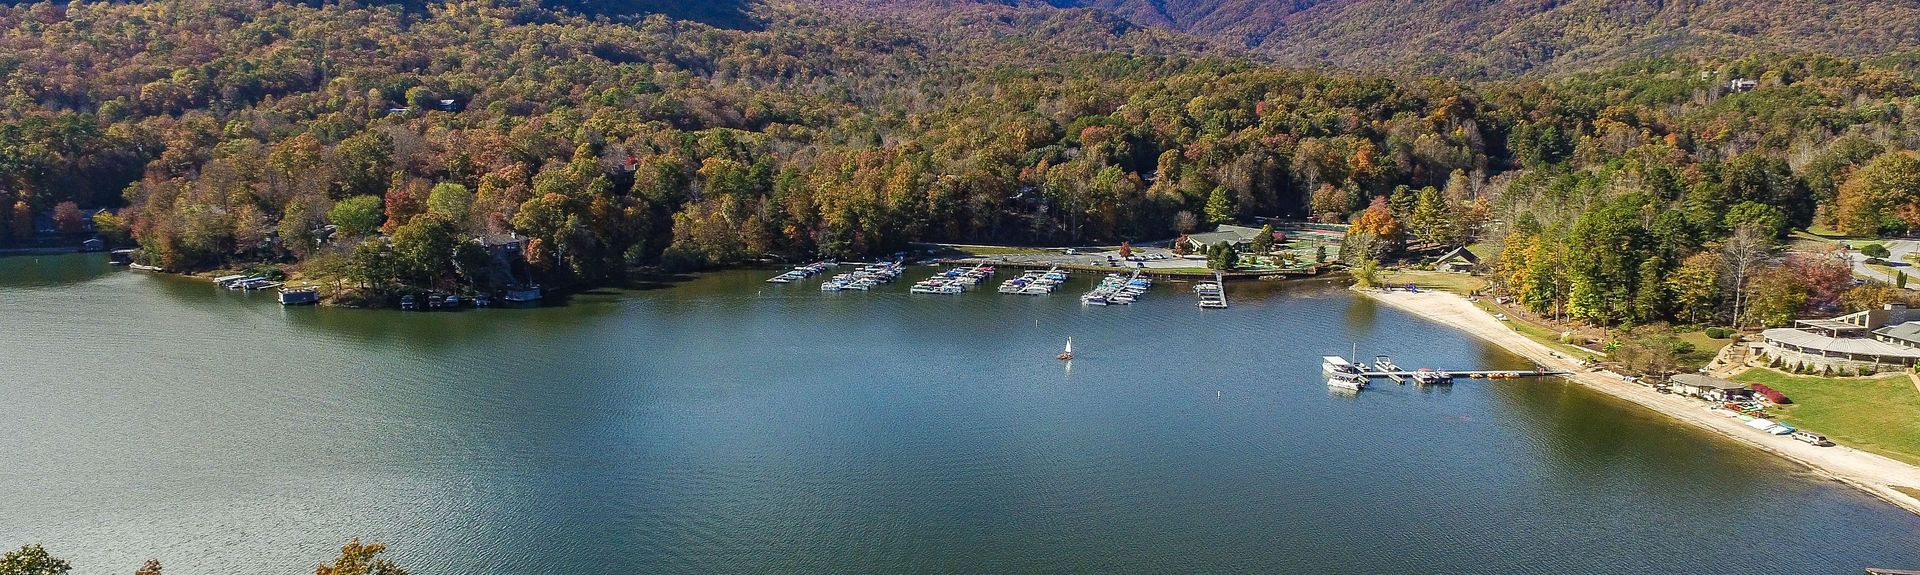 Rumbling Bald Resort (Lake Lure, Pohjois-Carolina, Yhdysvallat)